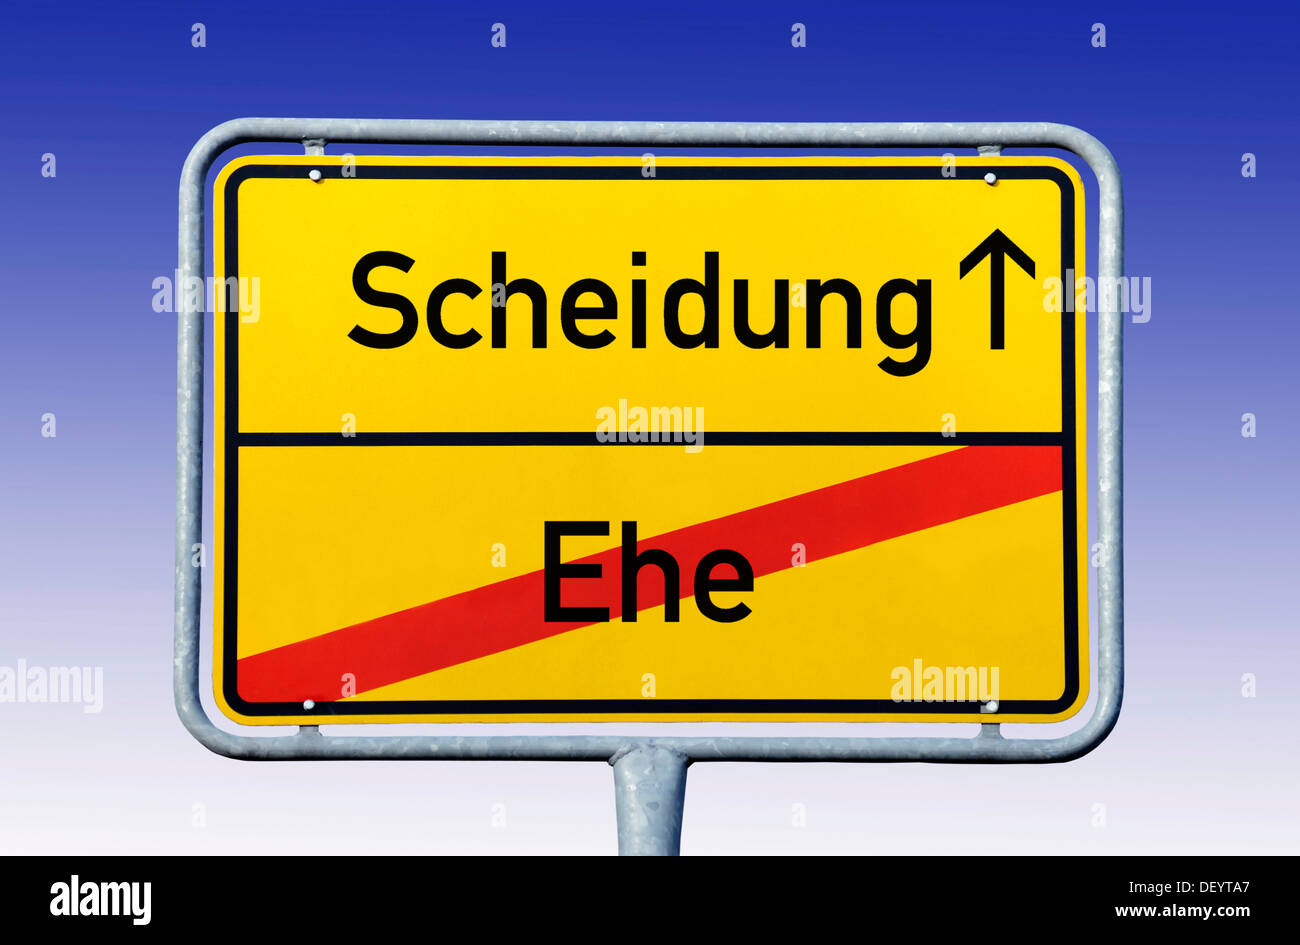 City limits sign, leaving Ehe, entering Scheidung, German for leaving marriage and entering divorce, symbolic image - Stock Image